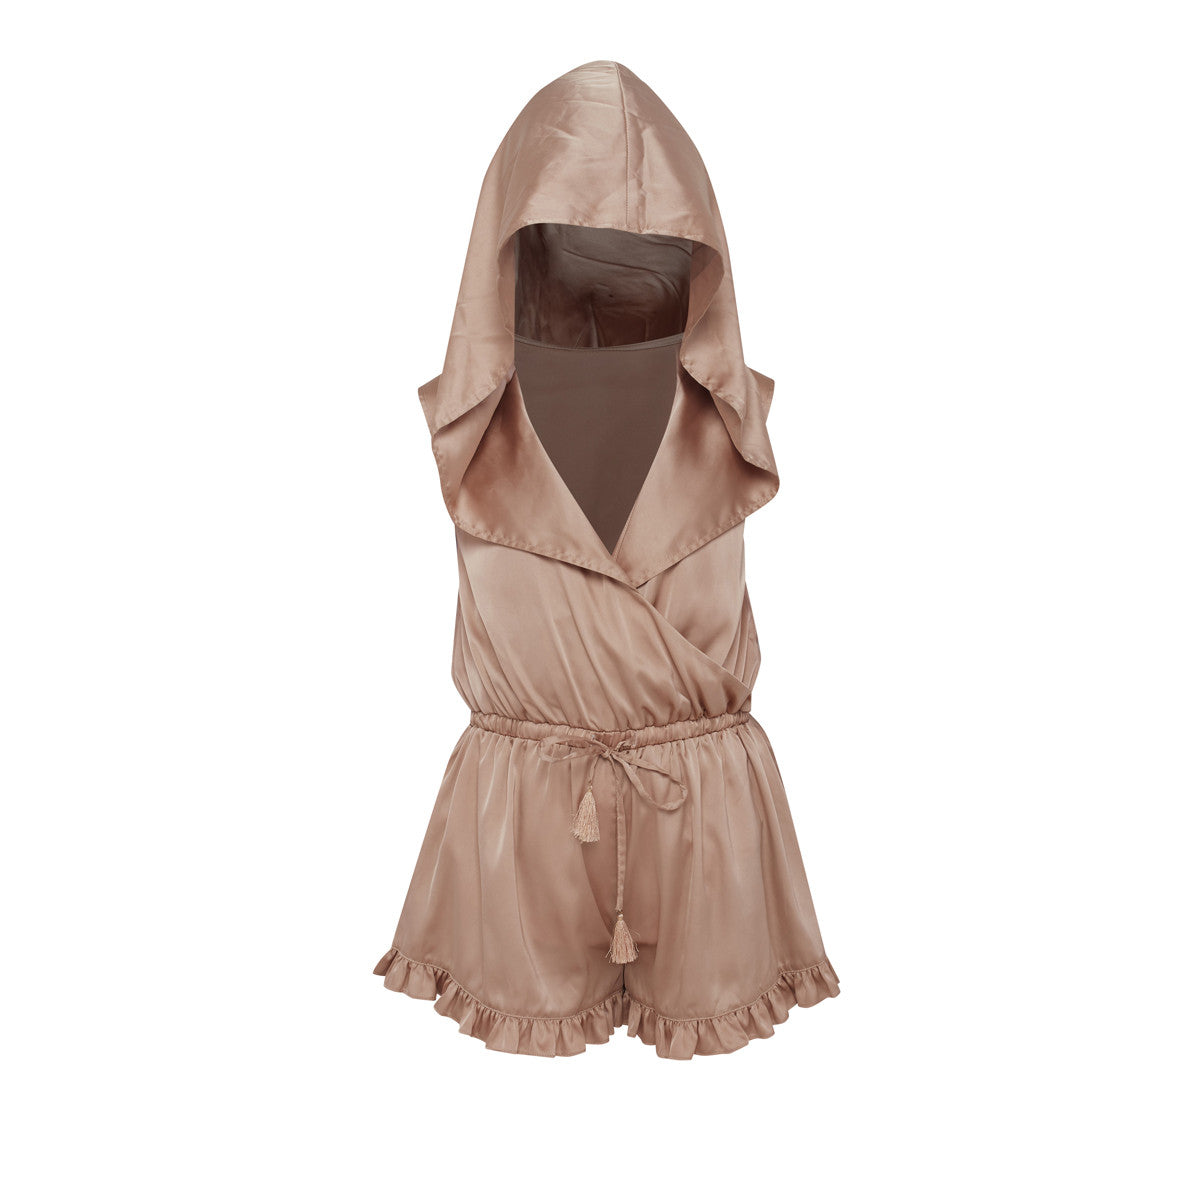 St Tropez Ruffle Romper - KARMA for a cure